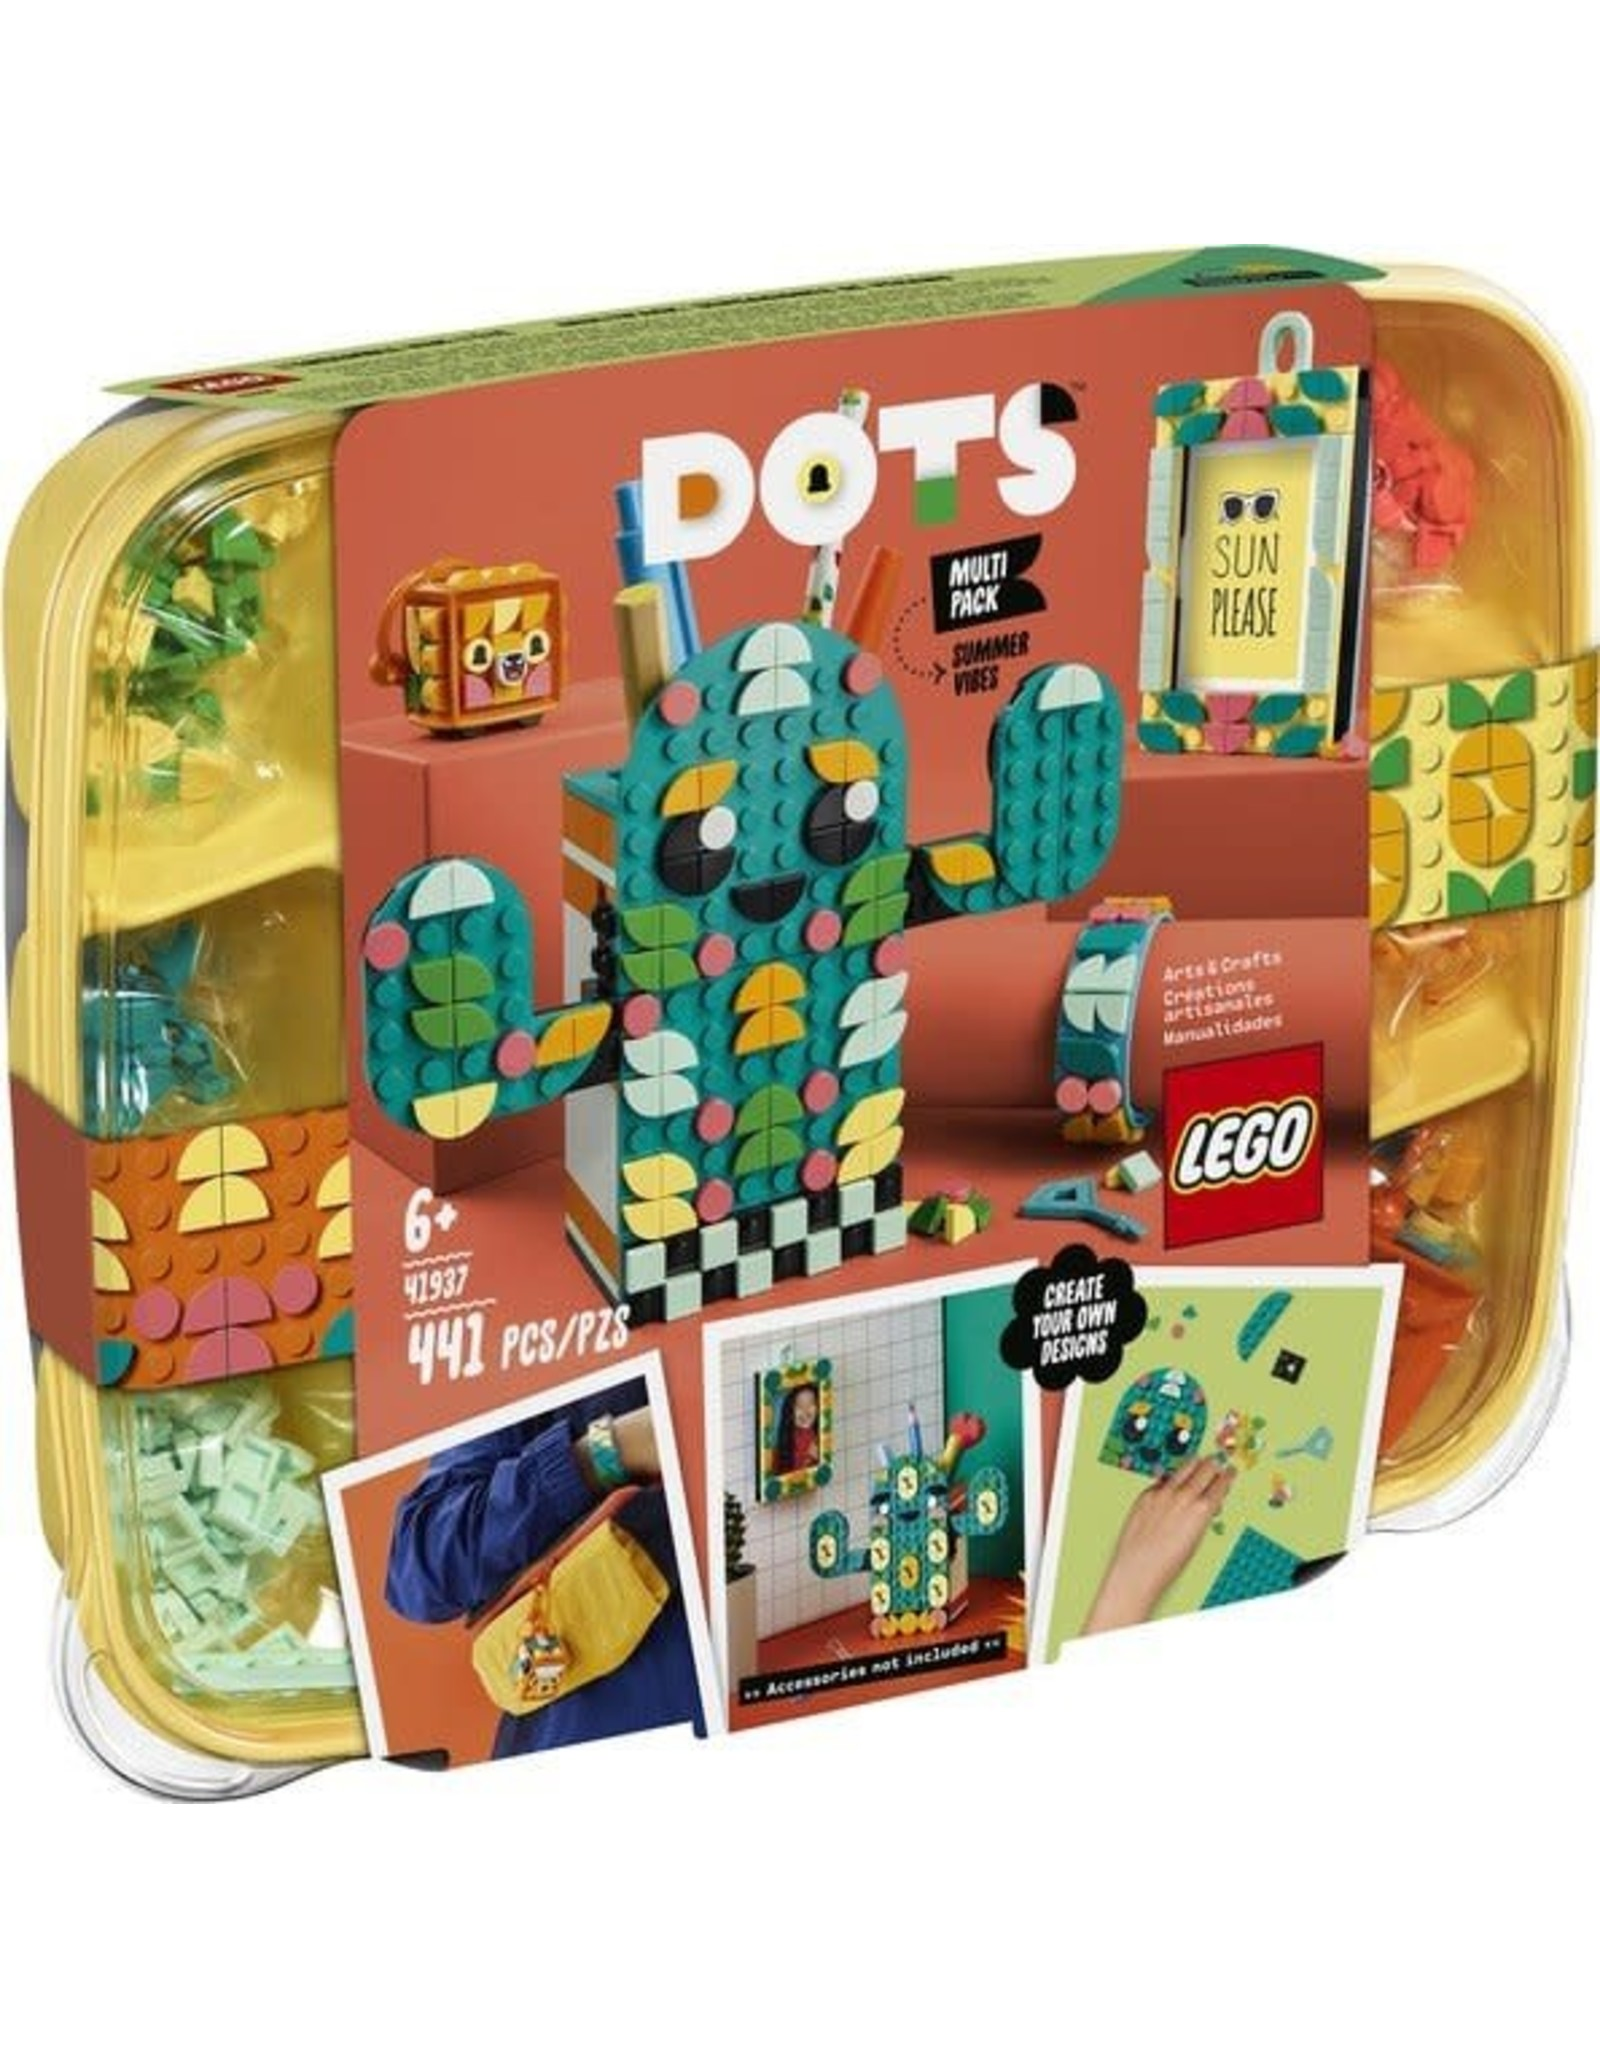 LEGO Dots - 41937 Multi Pack - Summer Vibes